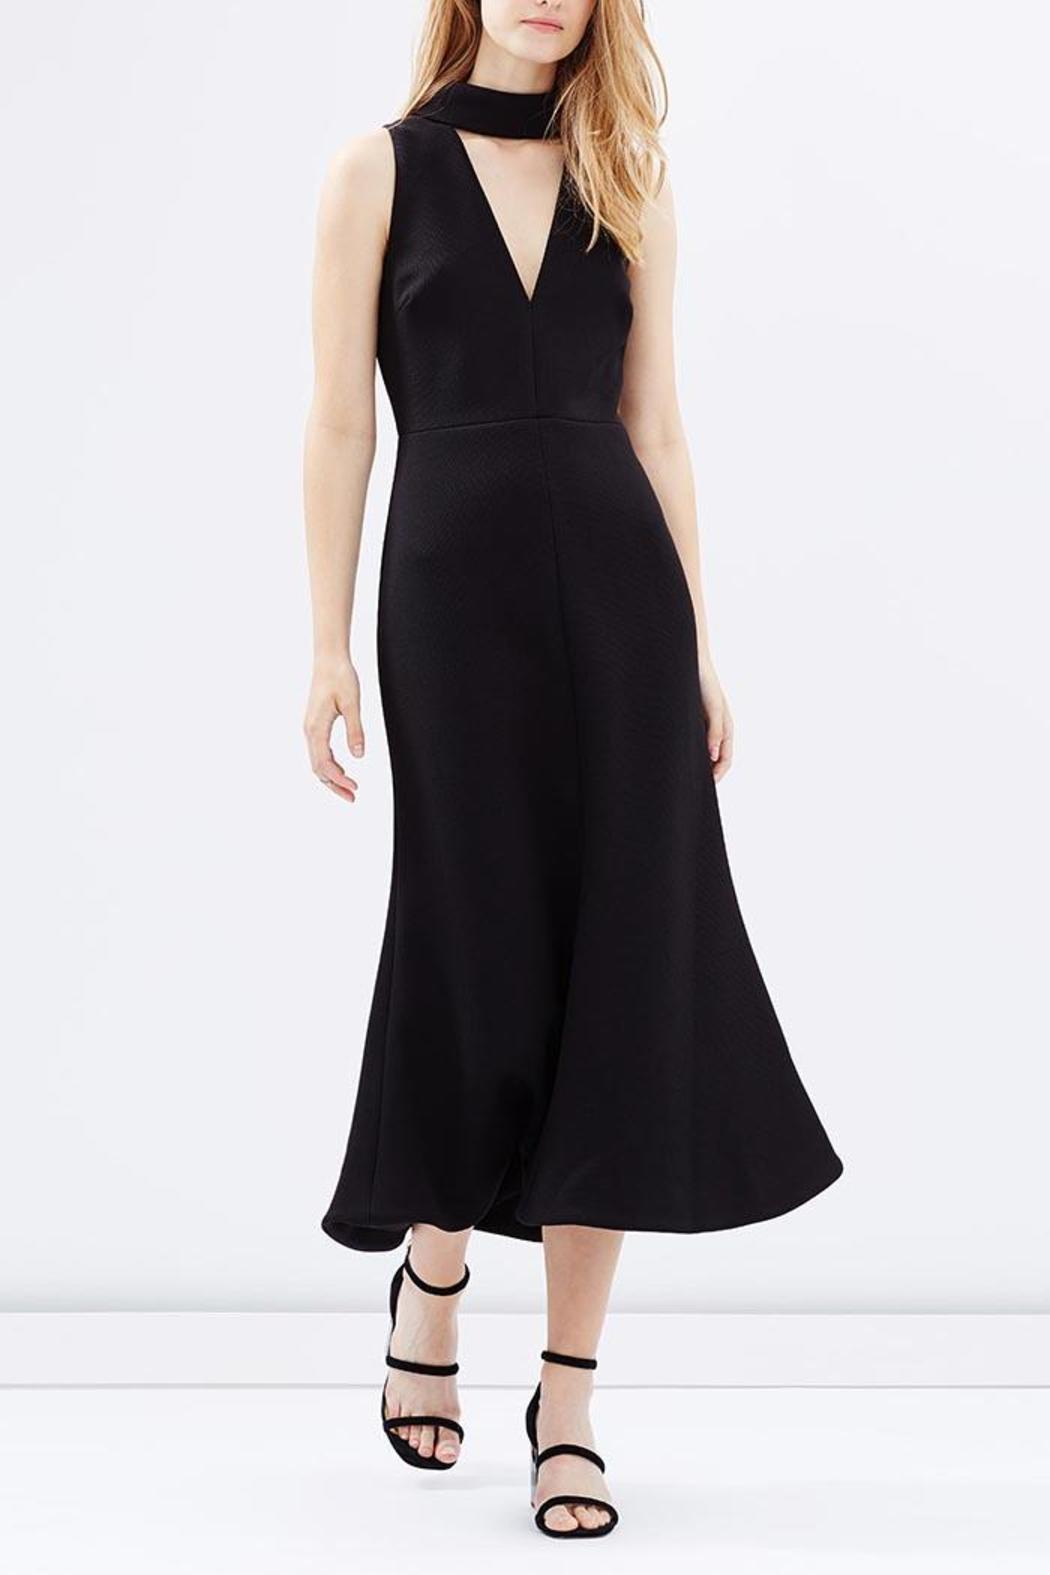 C/MEO COLLECTIVE First Thing Dress - Main Image